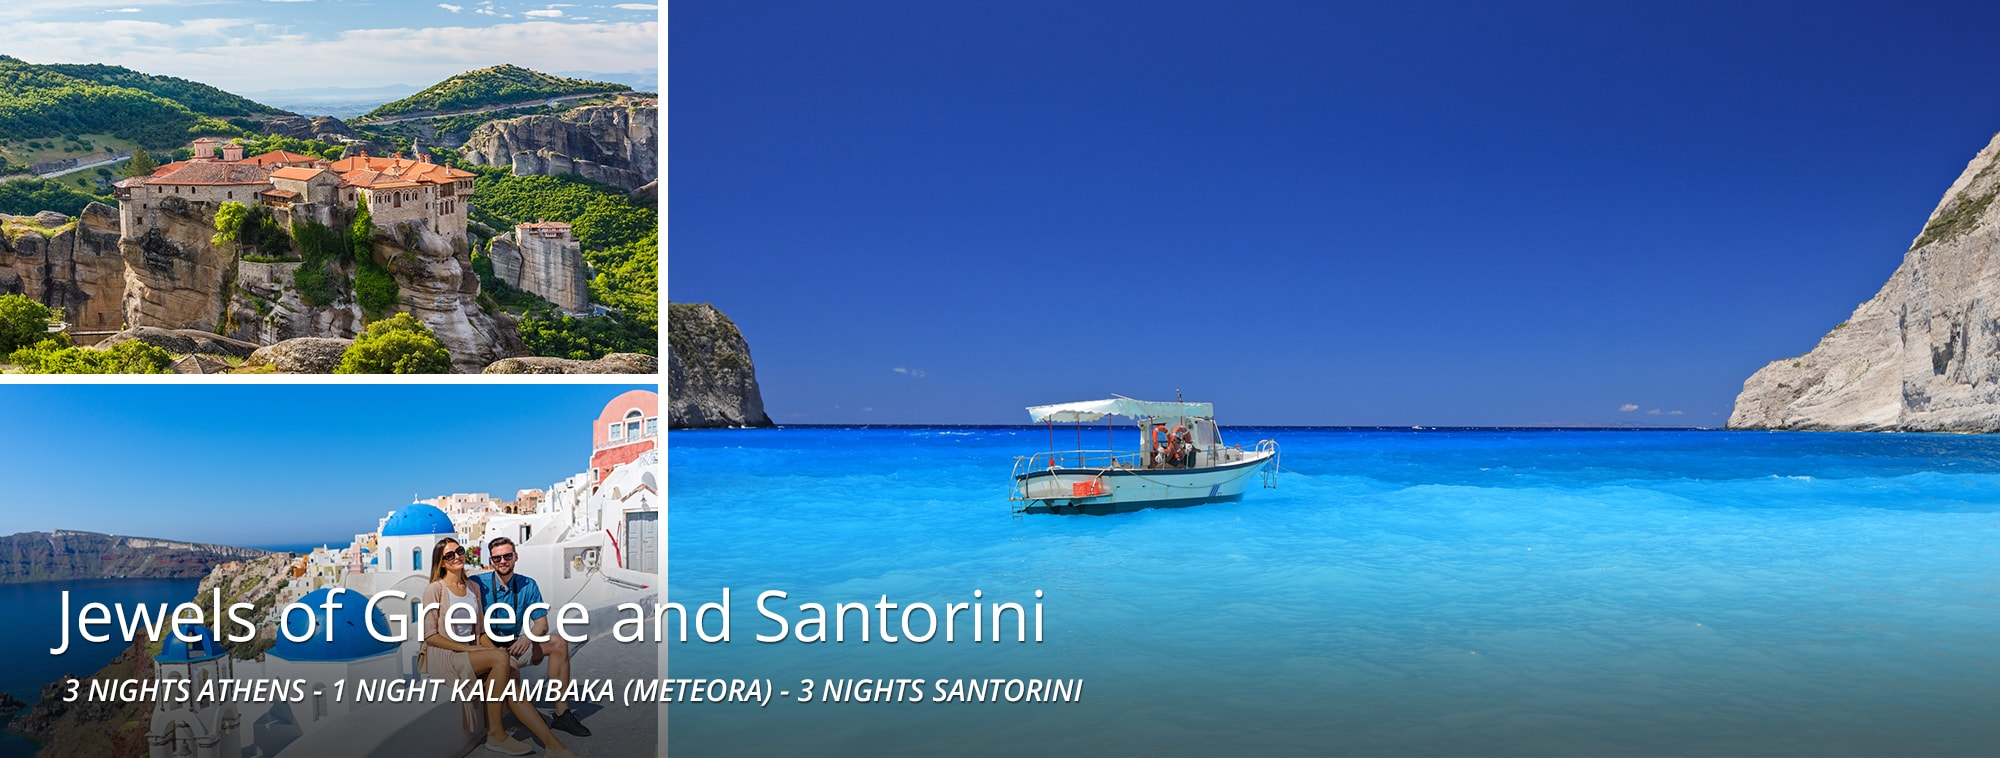 Jewels of Greece and Santorini Tour Banner